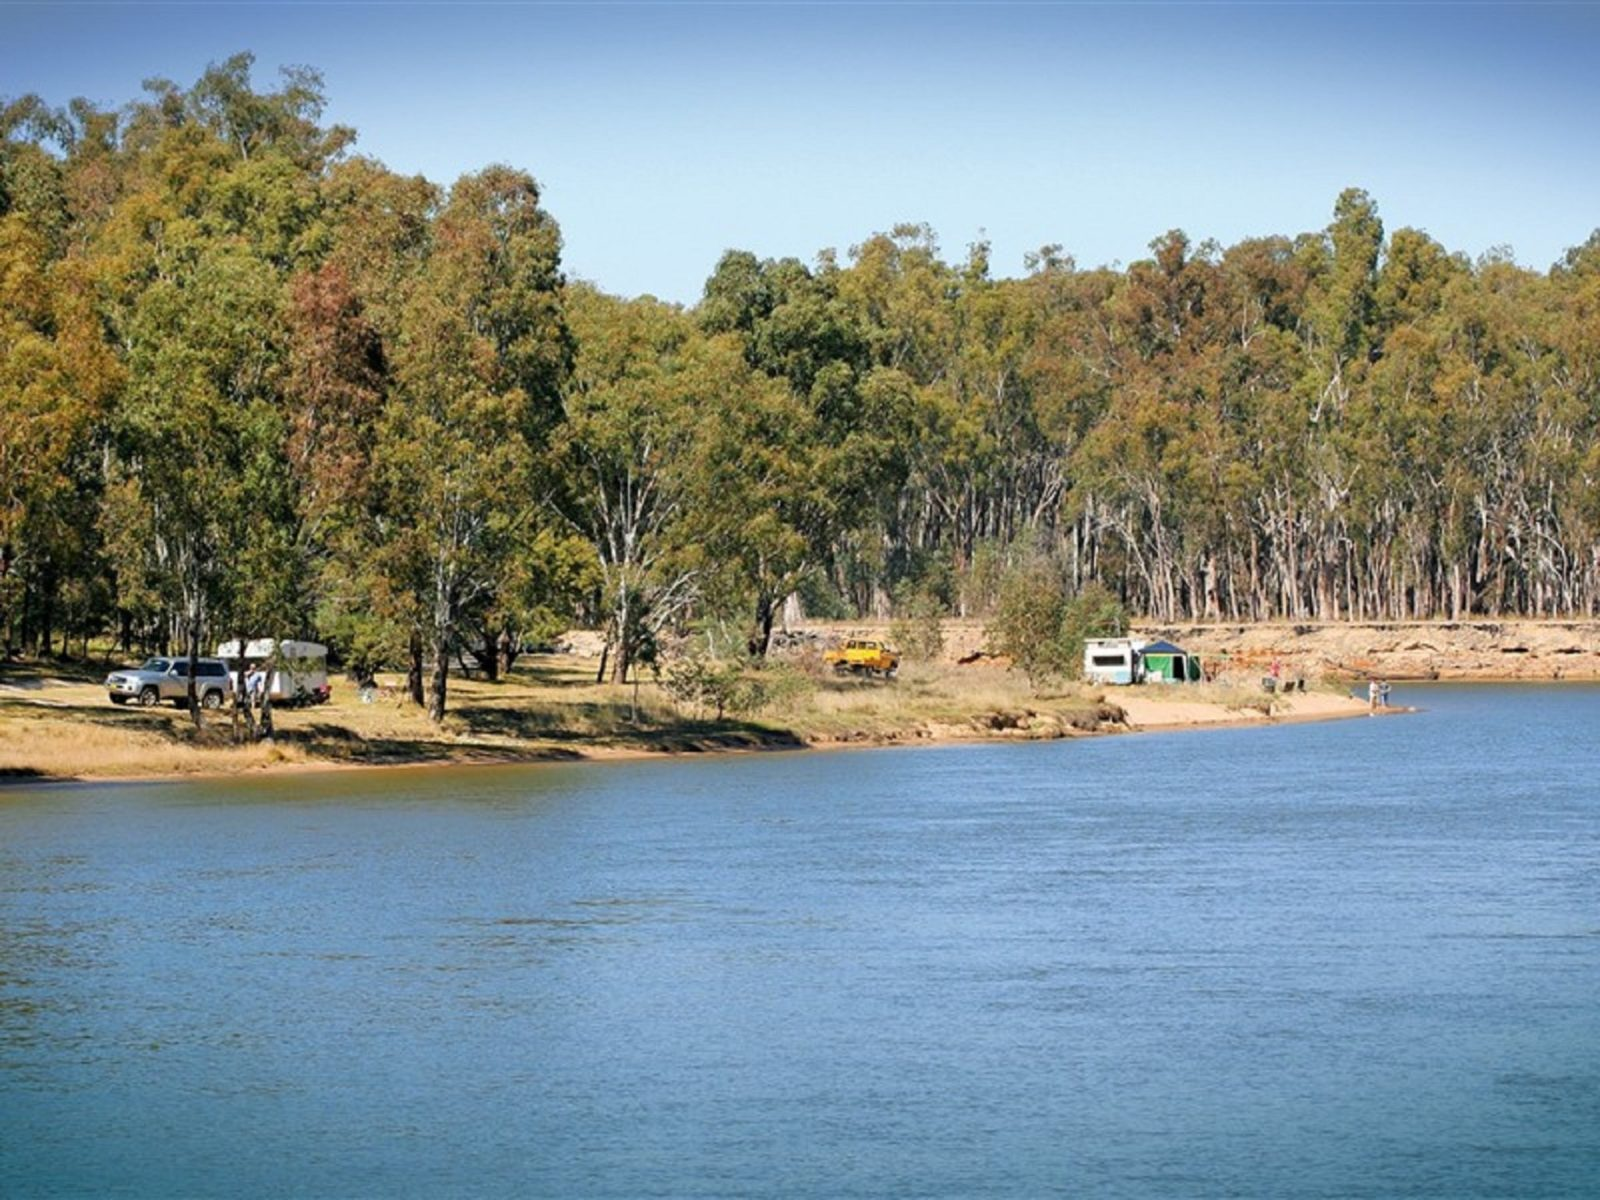 Camping on the Murray